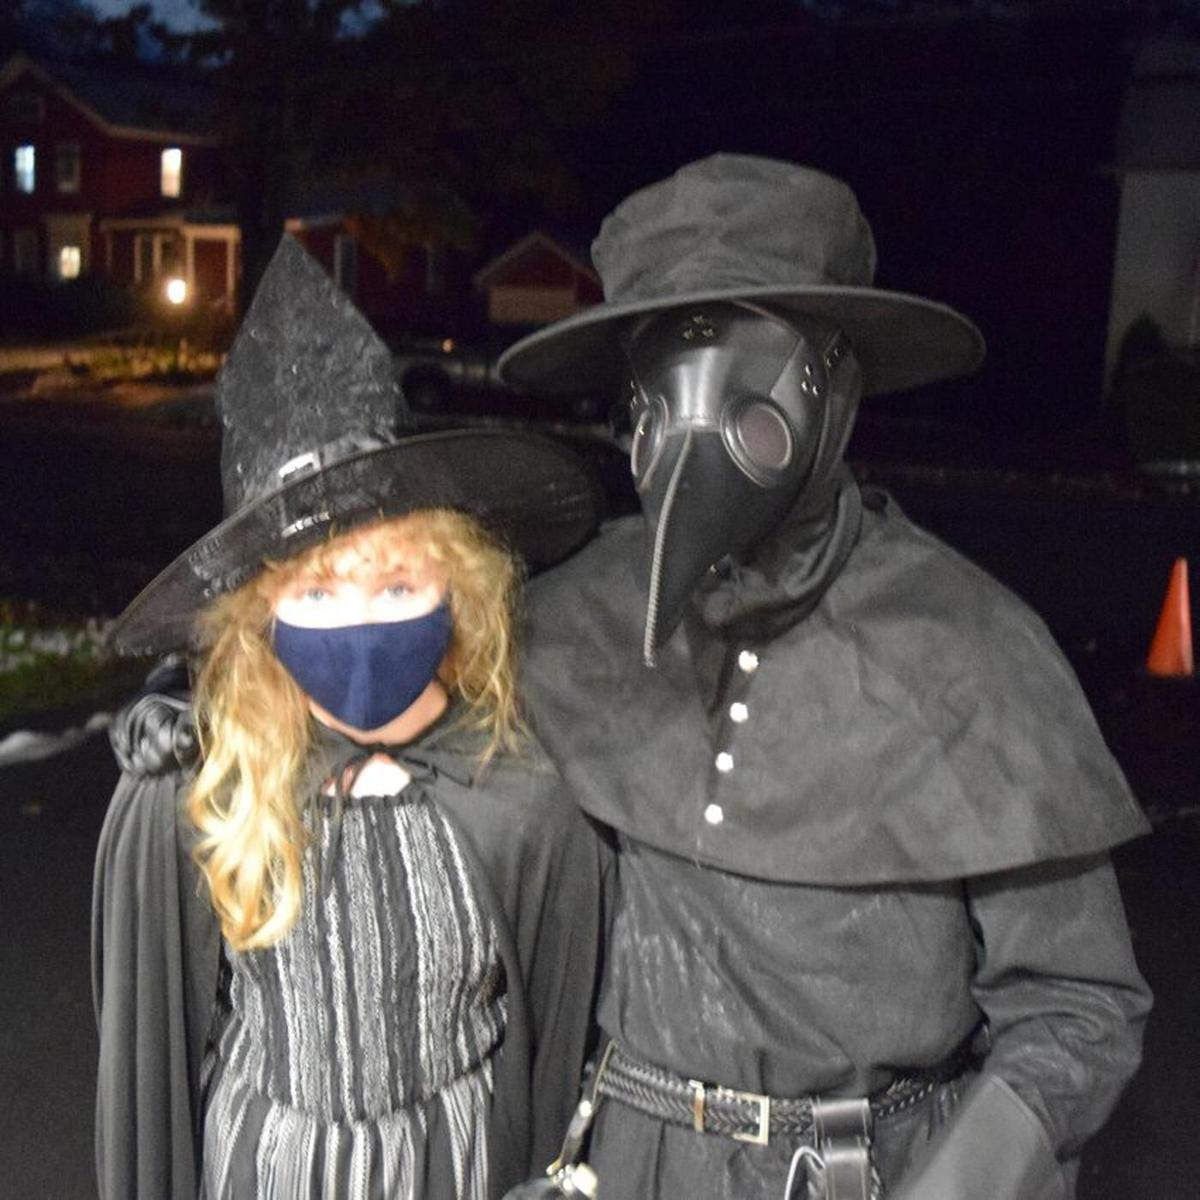 Town firefighters delight Halloweeners throughout Litchfield with candy treats